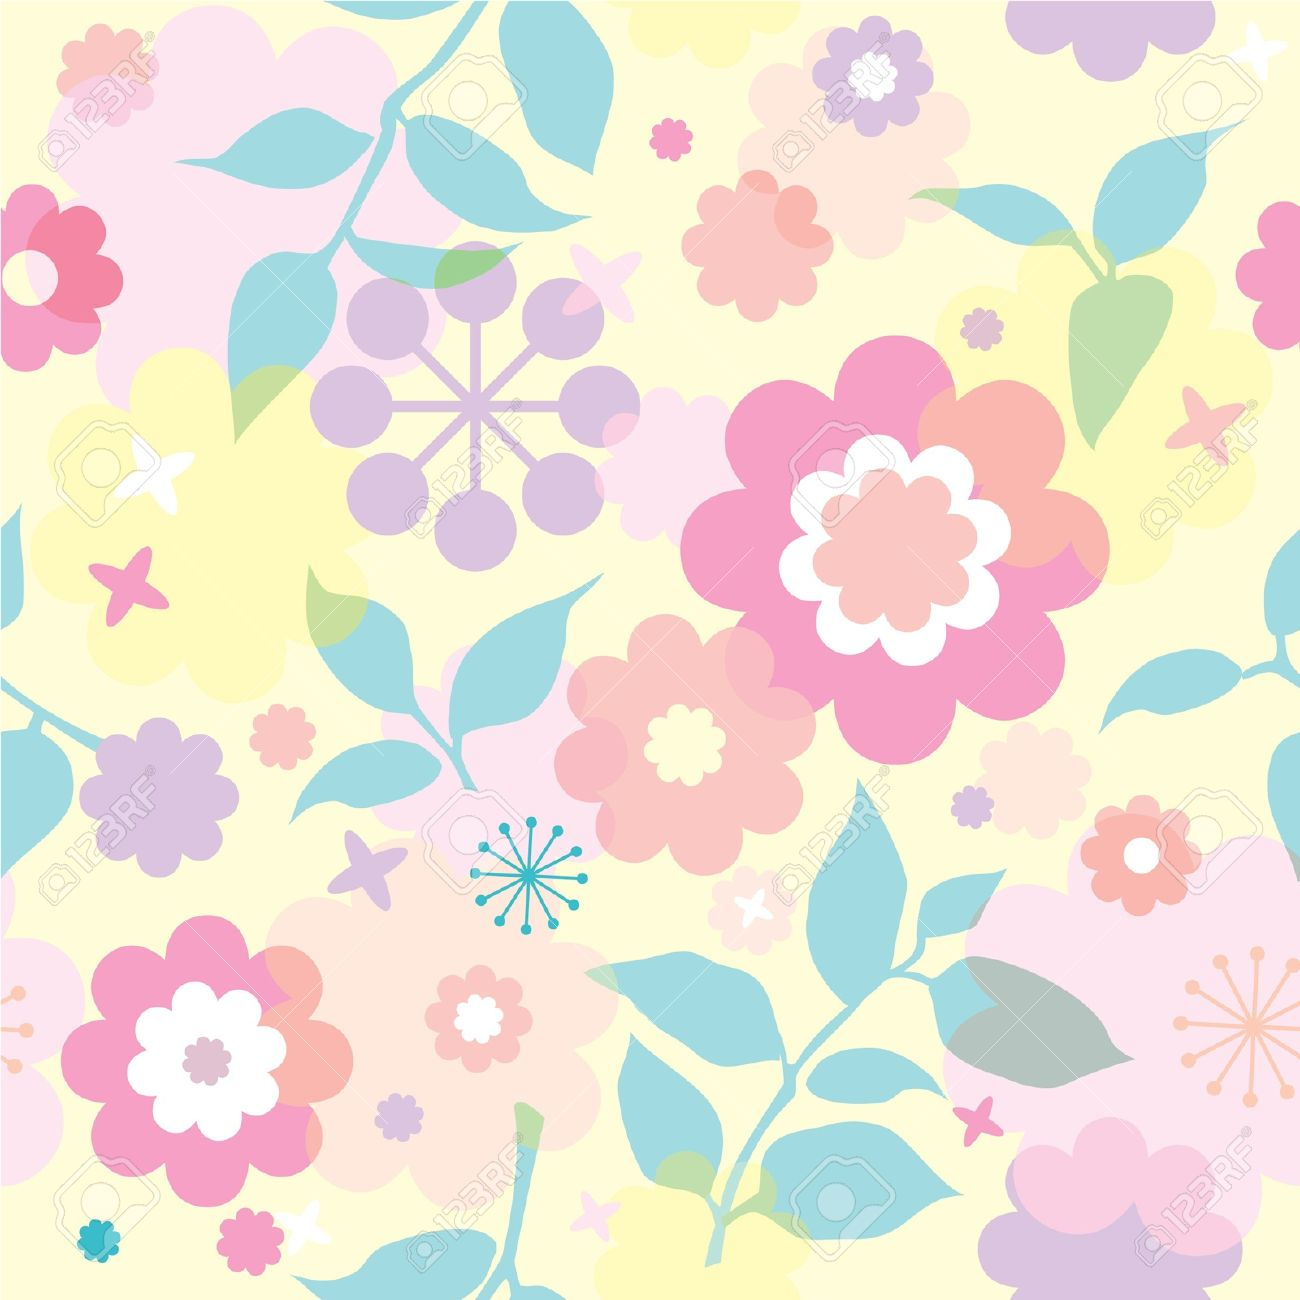 Bright Seamless Floral Wallpaper With Decorative Flowers Royalty Free Cliparts Vectors And Stock Illustration Image 12375155